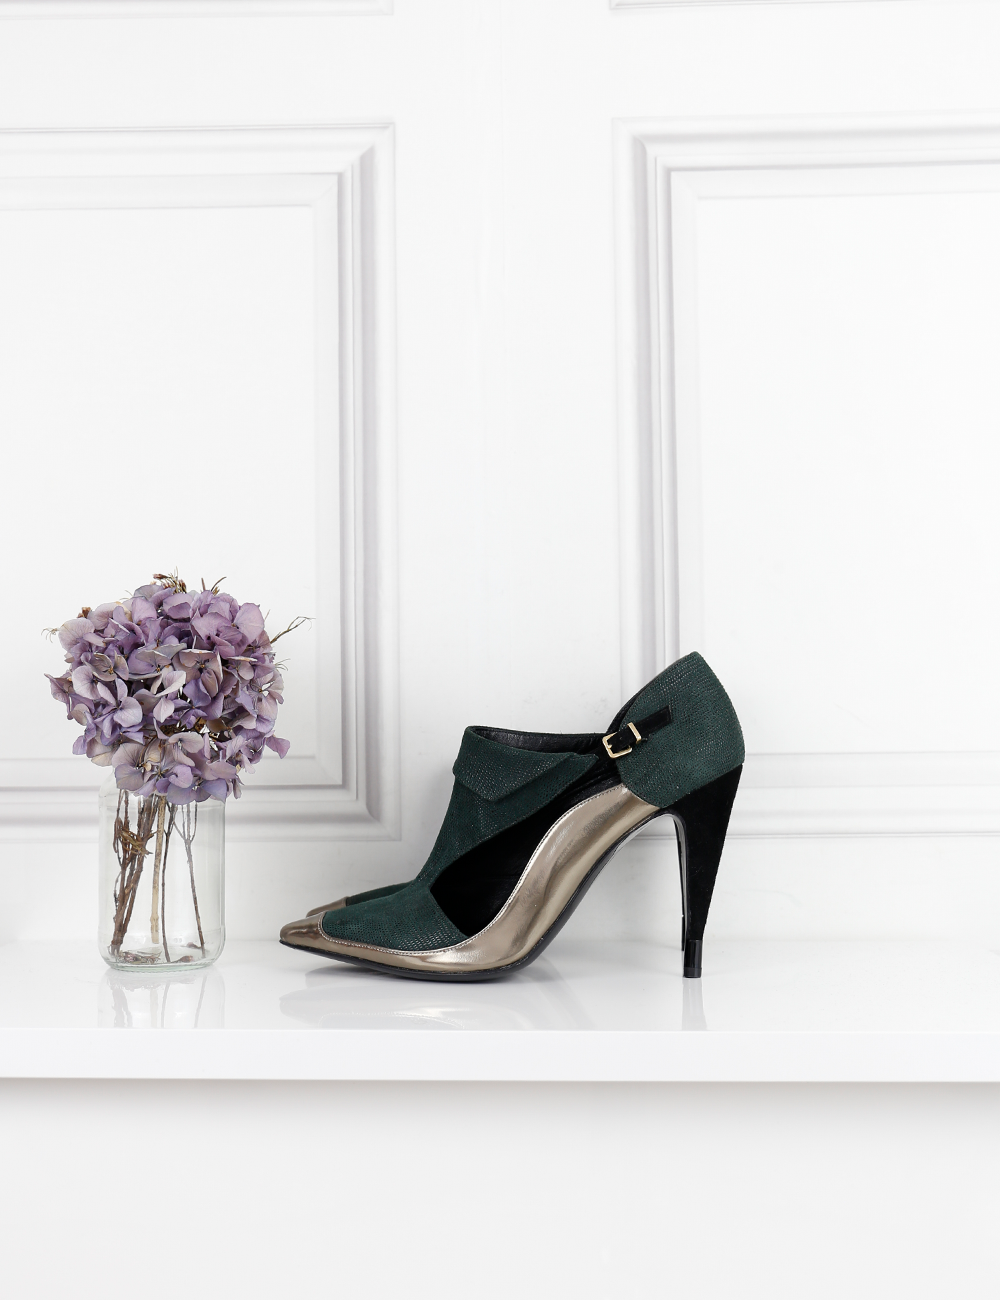 ROLAND MOURET SHOES Heeled pumps with metallic edging